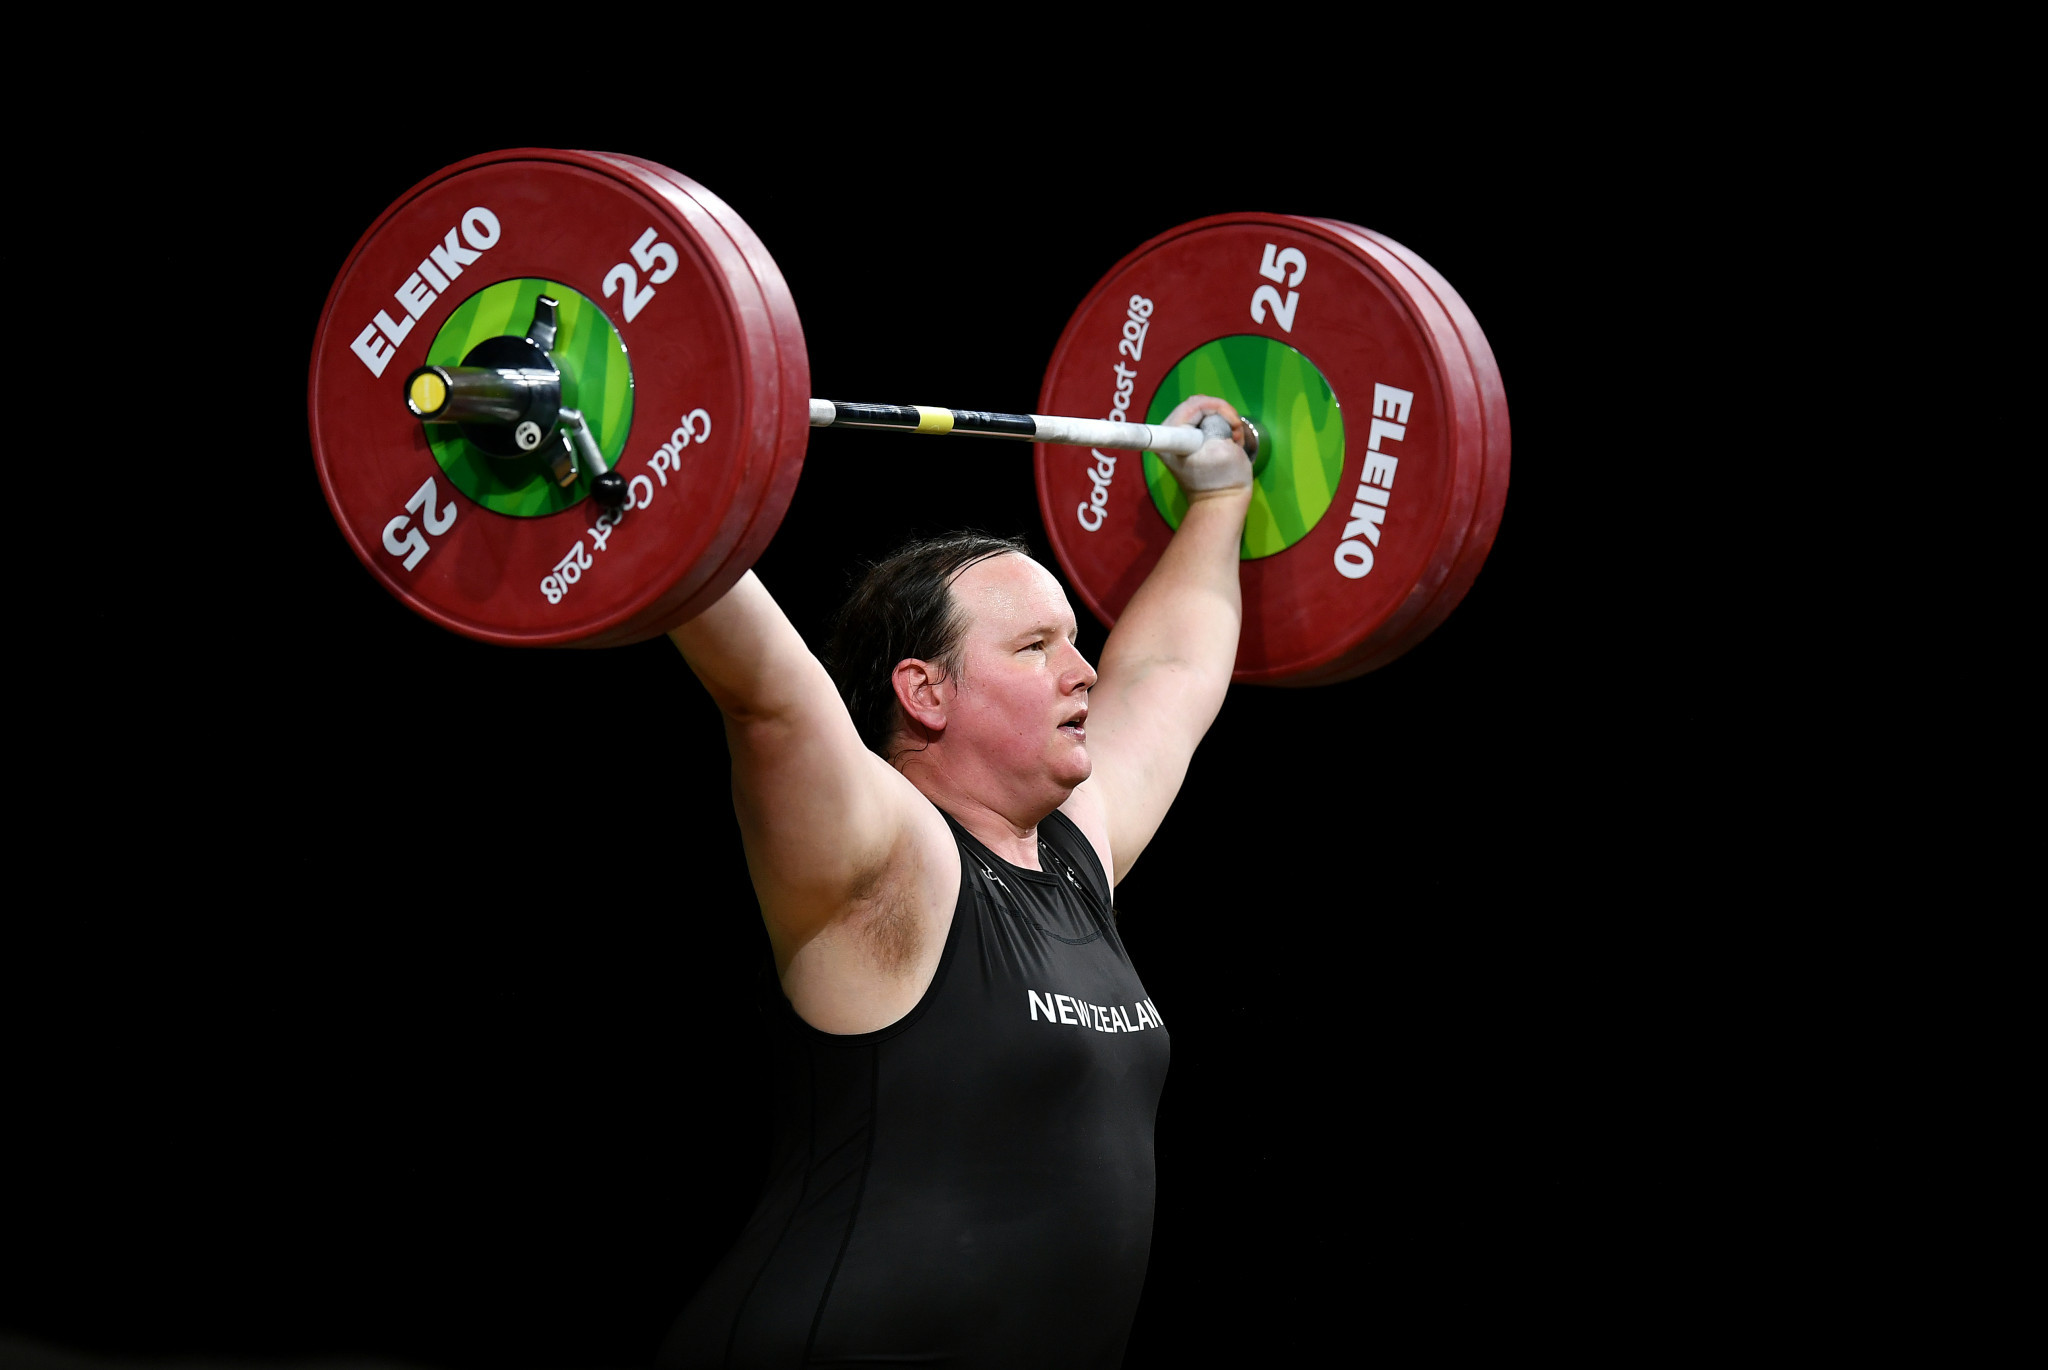 Laurel Hubbard has qualified for the Olympics and could be a medal contender in the women's super-heavyweight category ©Getty Images